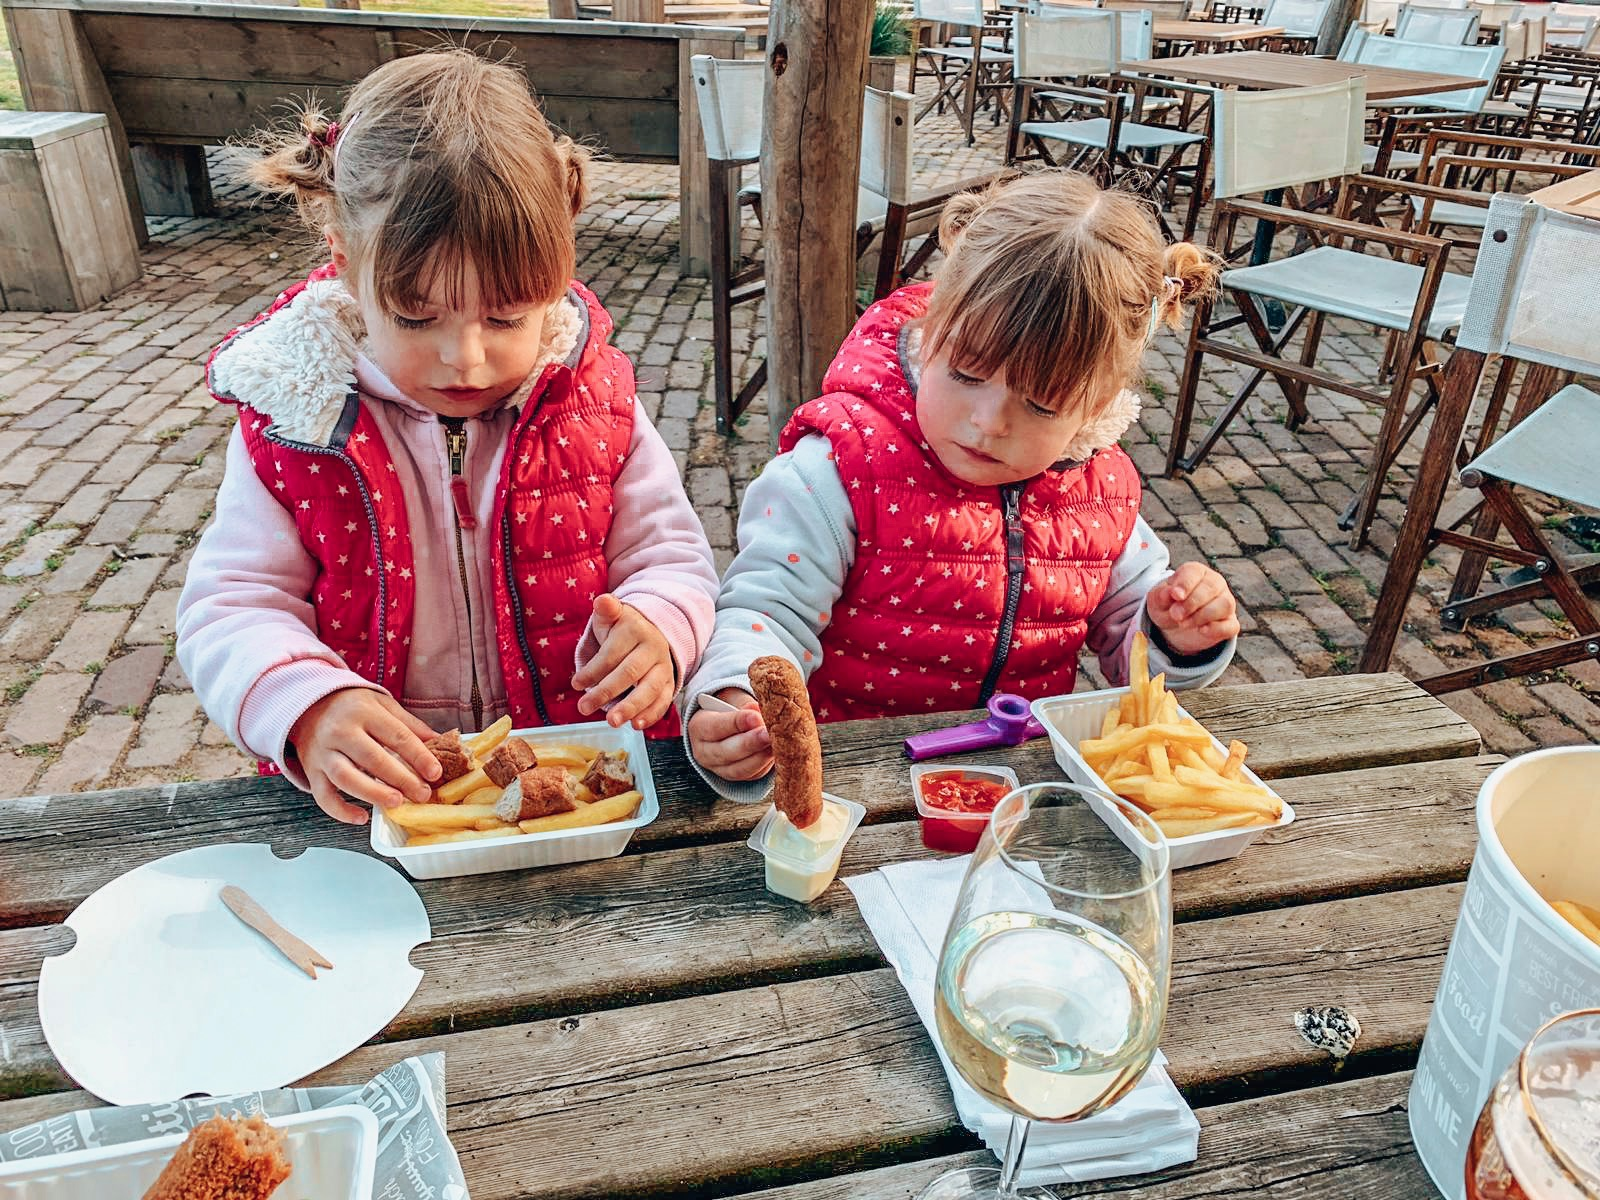 Twins eating at the outdoor seating area of the Afrika Club in Beekse Bergen Eurocamp.